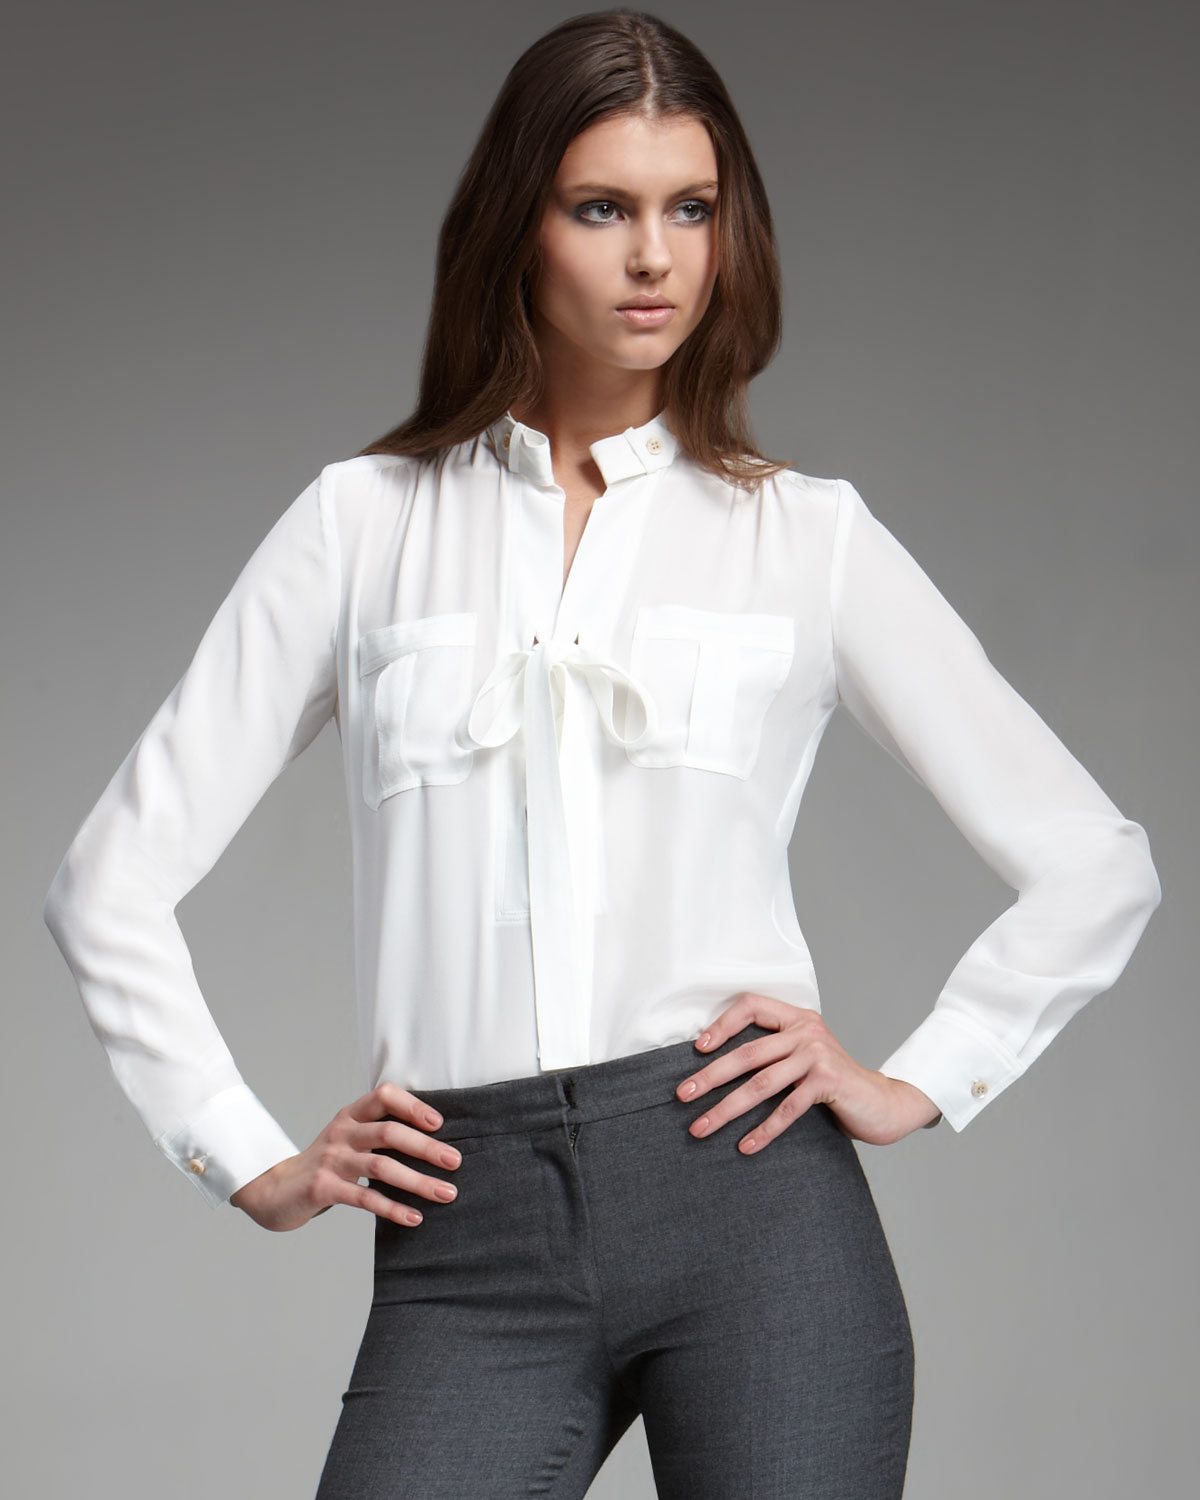 7ad0c6a5b4f9bf Lyst - Derek Lam Tie-front Blouse in White